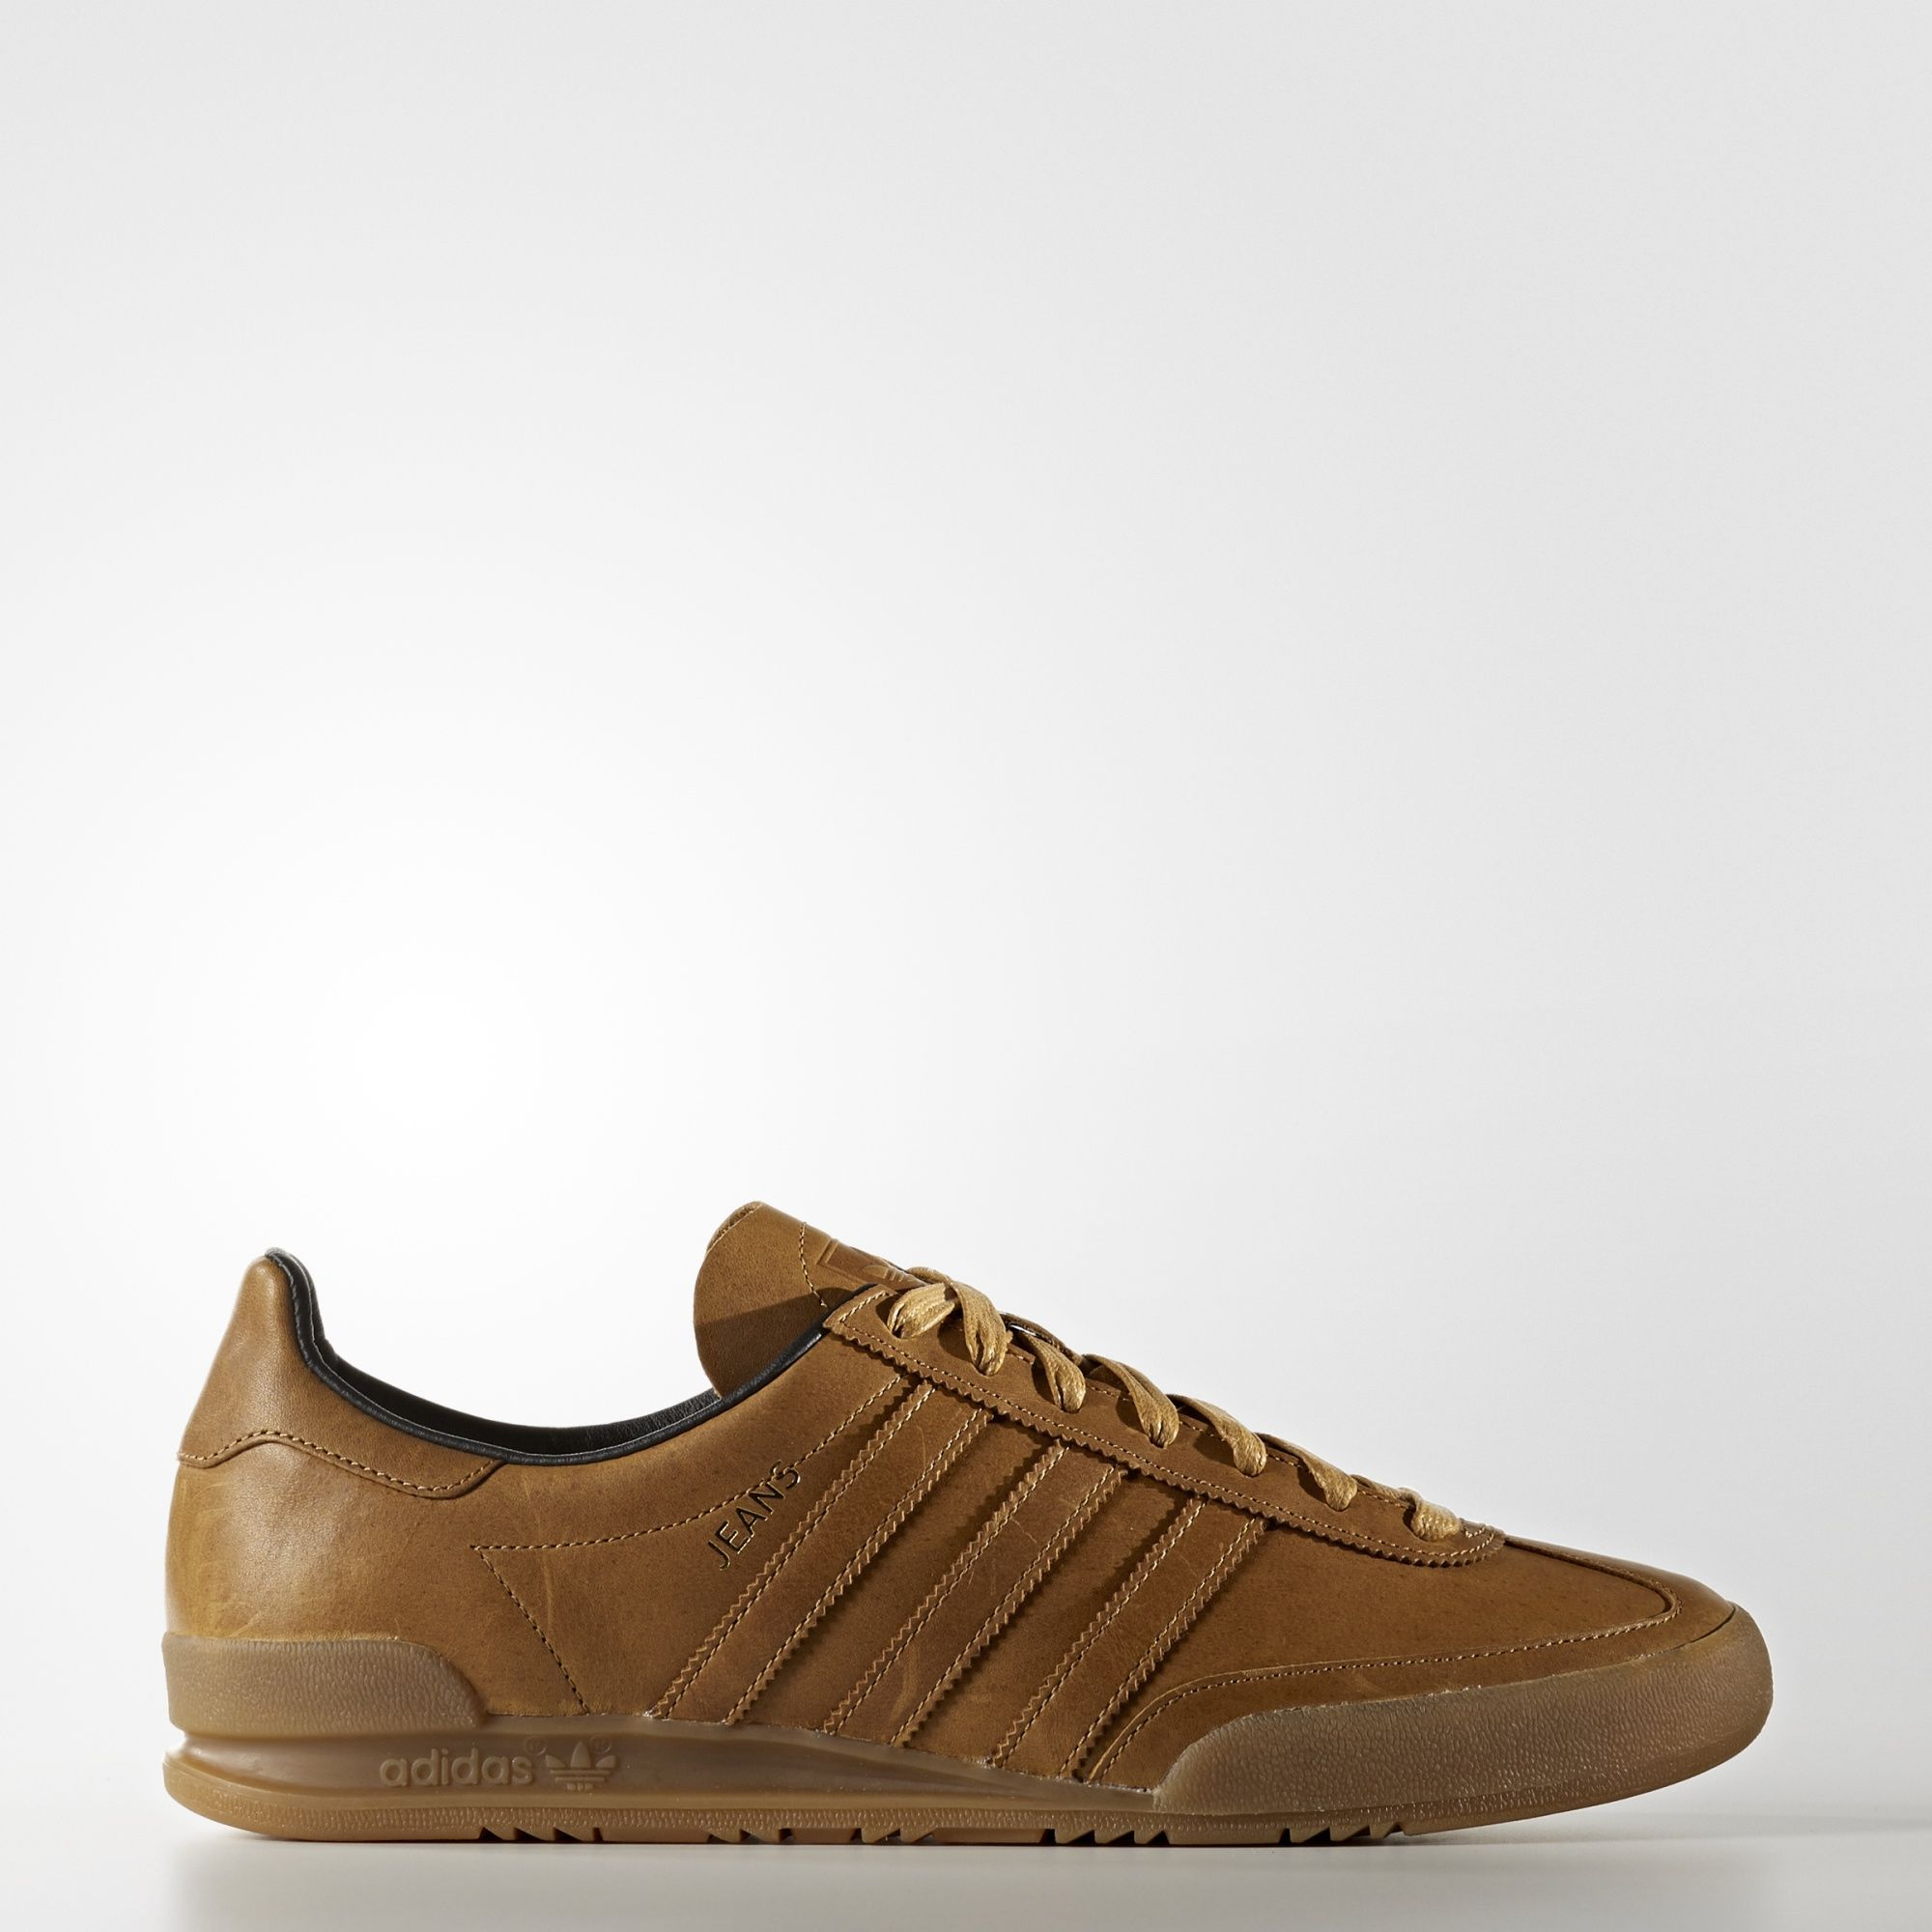 adidas jeans brown leather